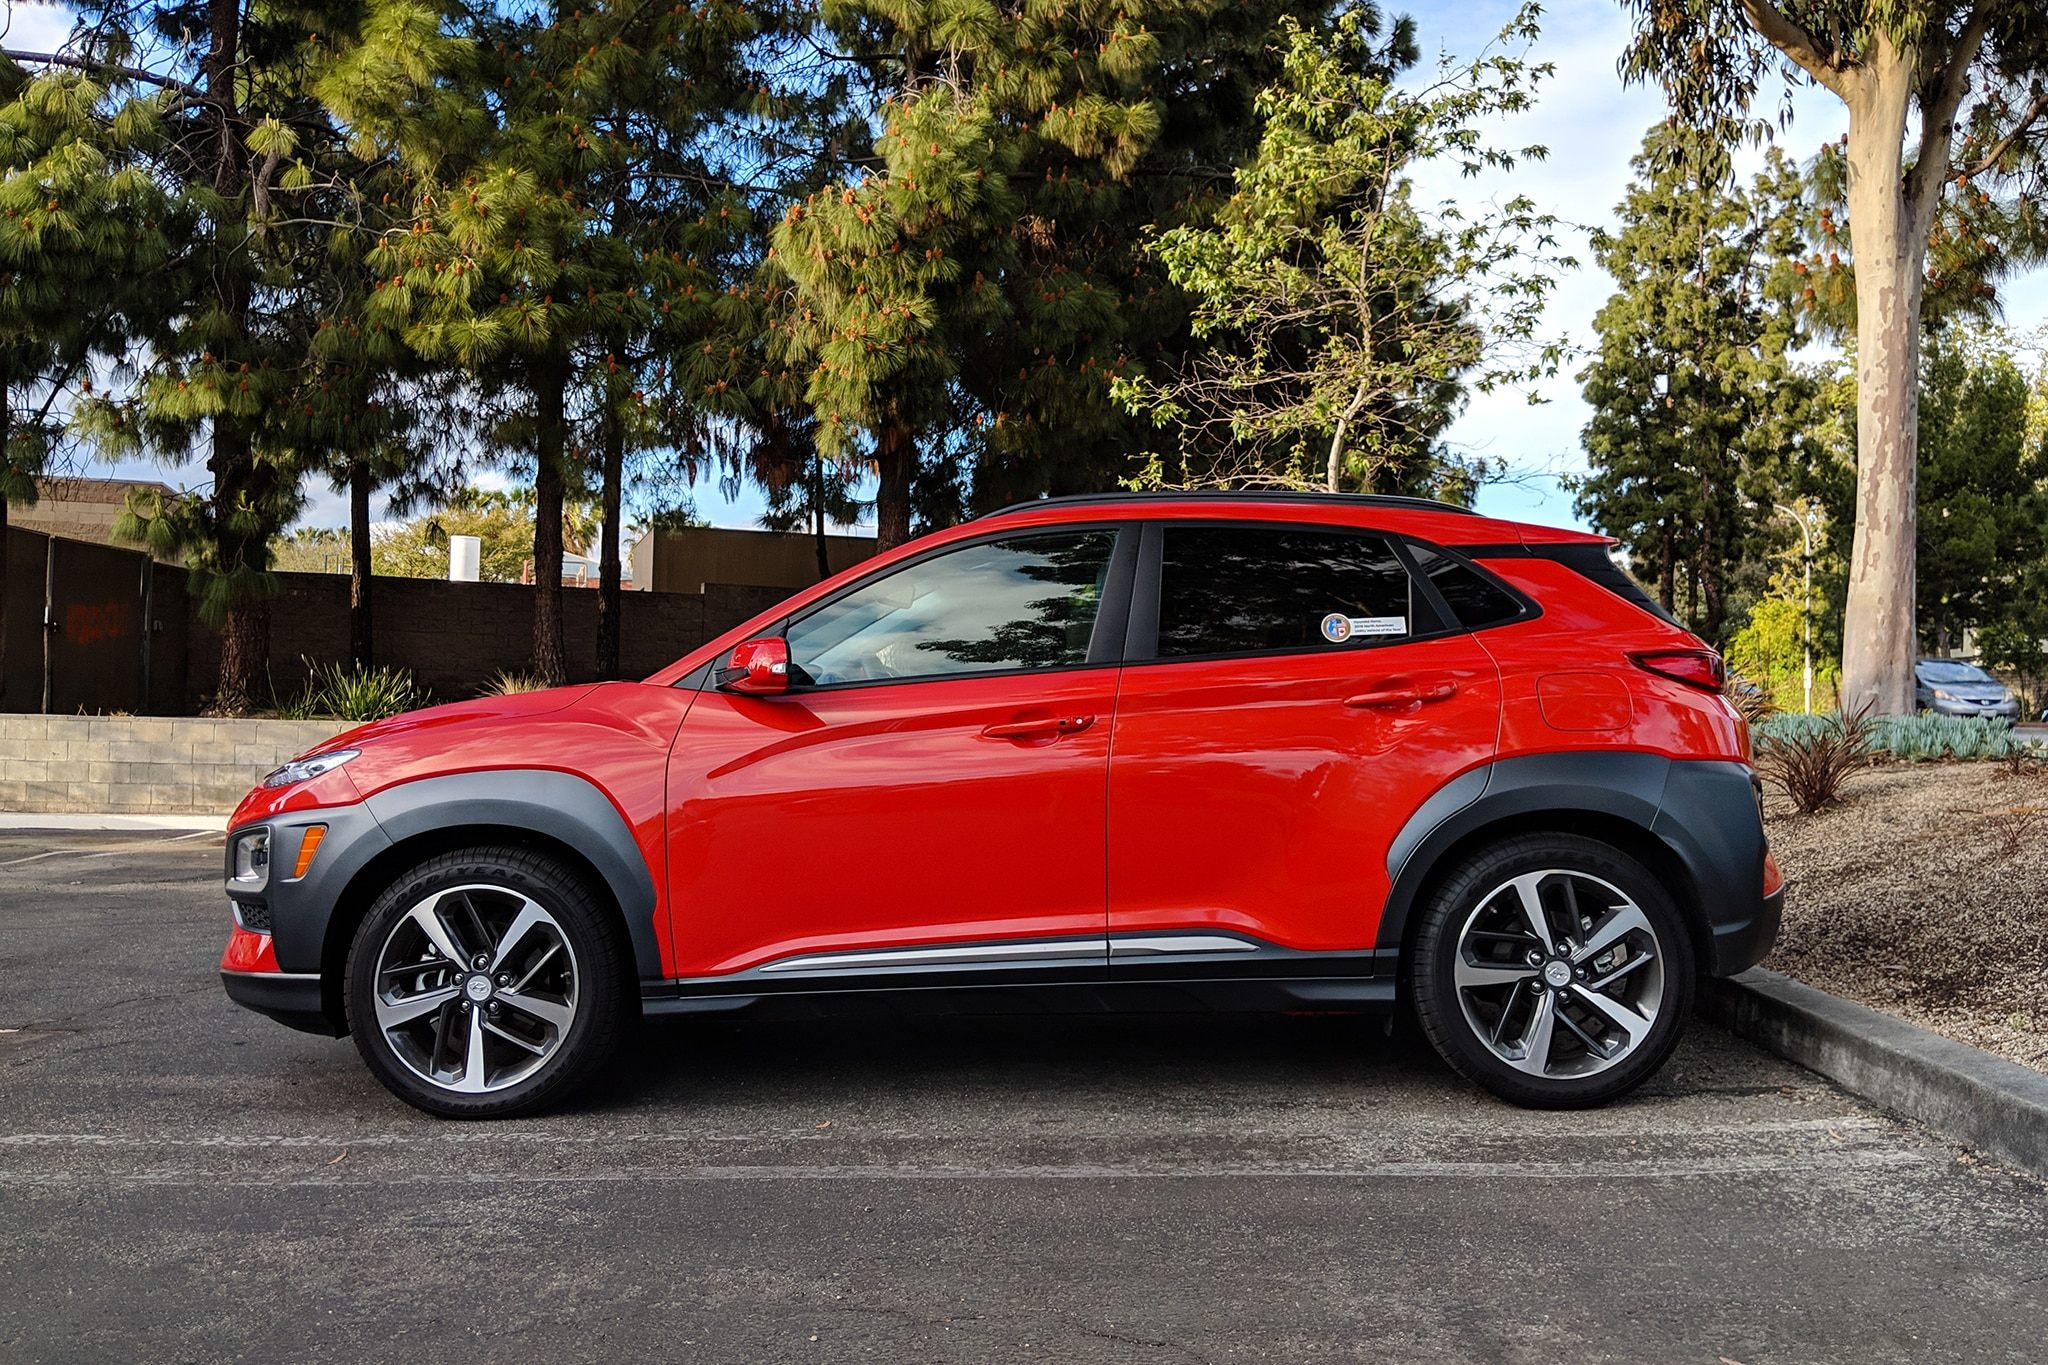 2019 Hyundai Kona Ultimate Review: A Hatchback In Disguise